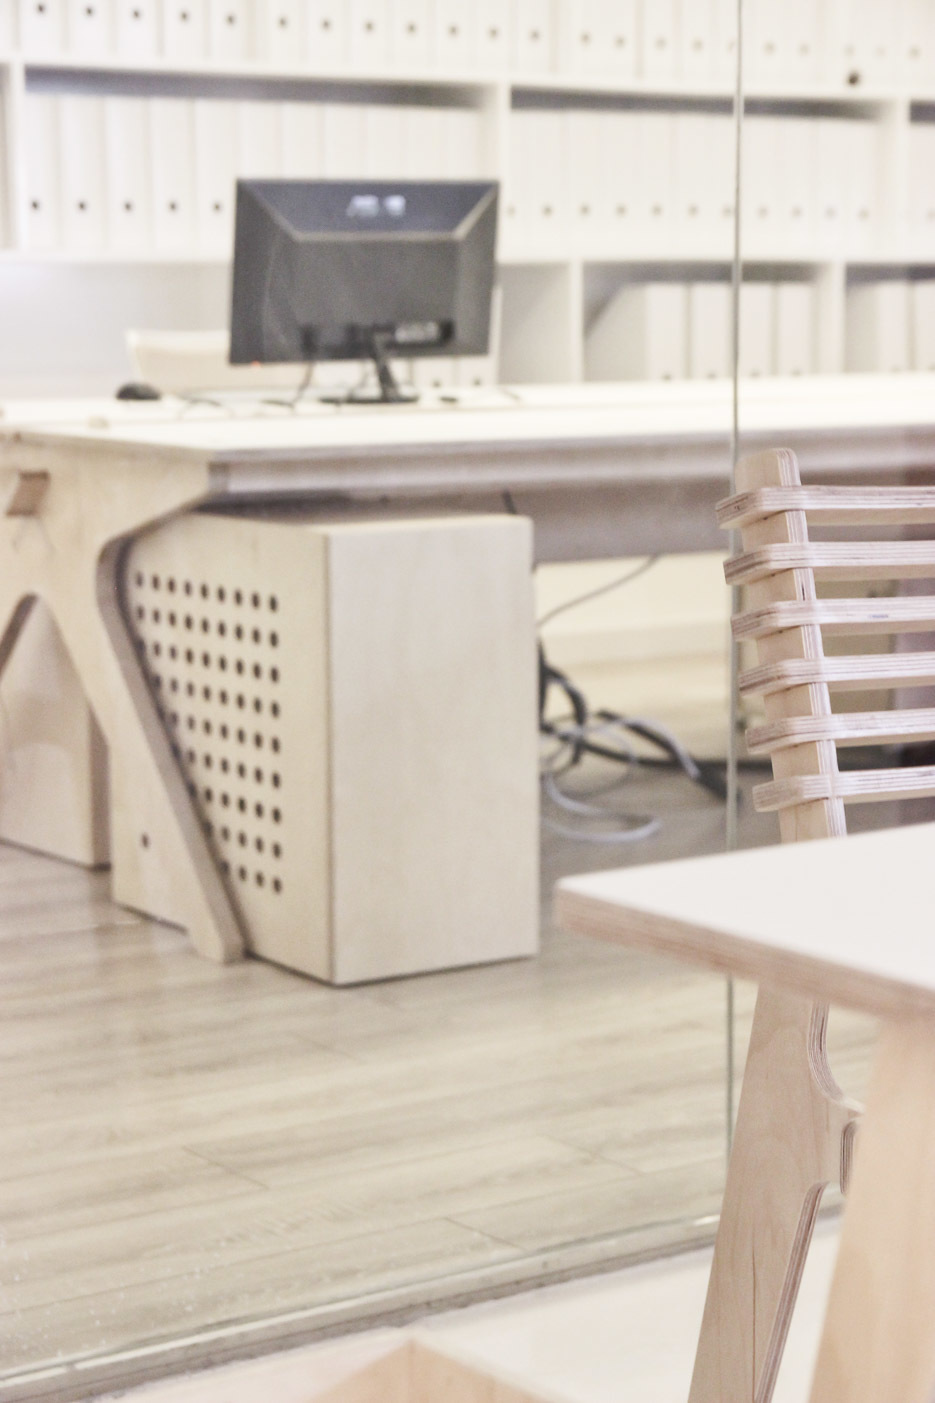 Mill Architects studio with Lean Desks and Valovi chairs